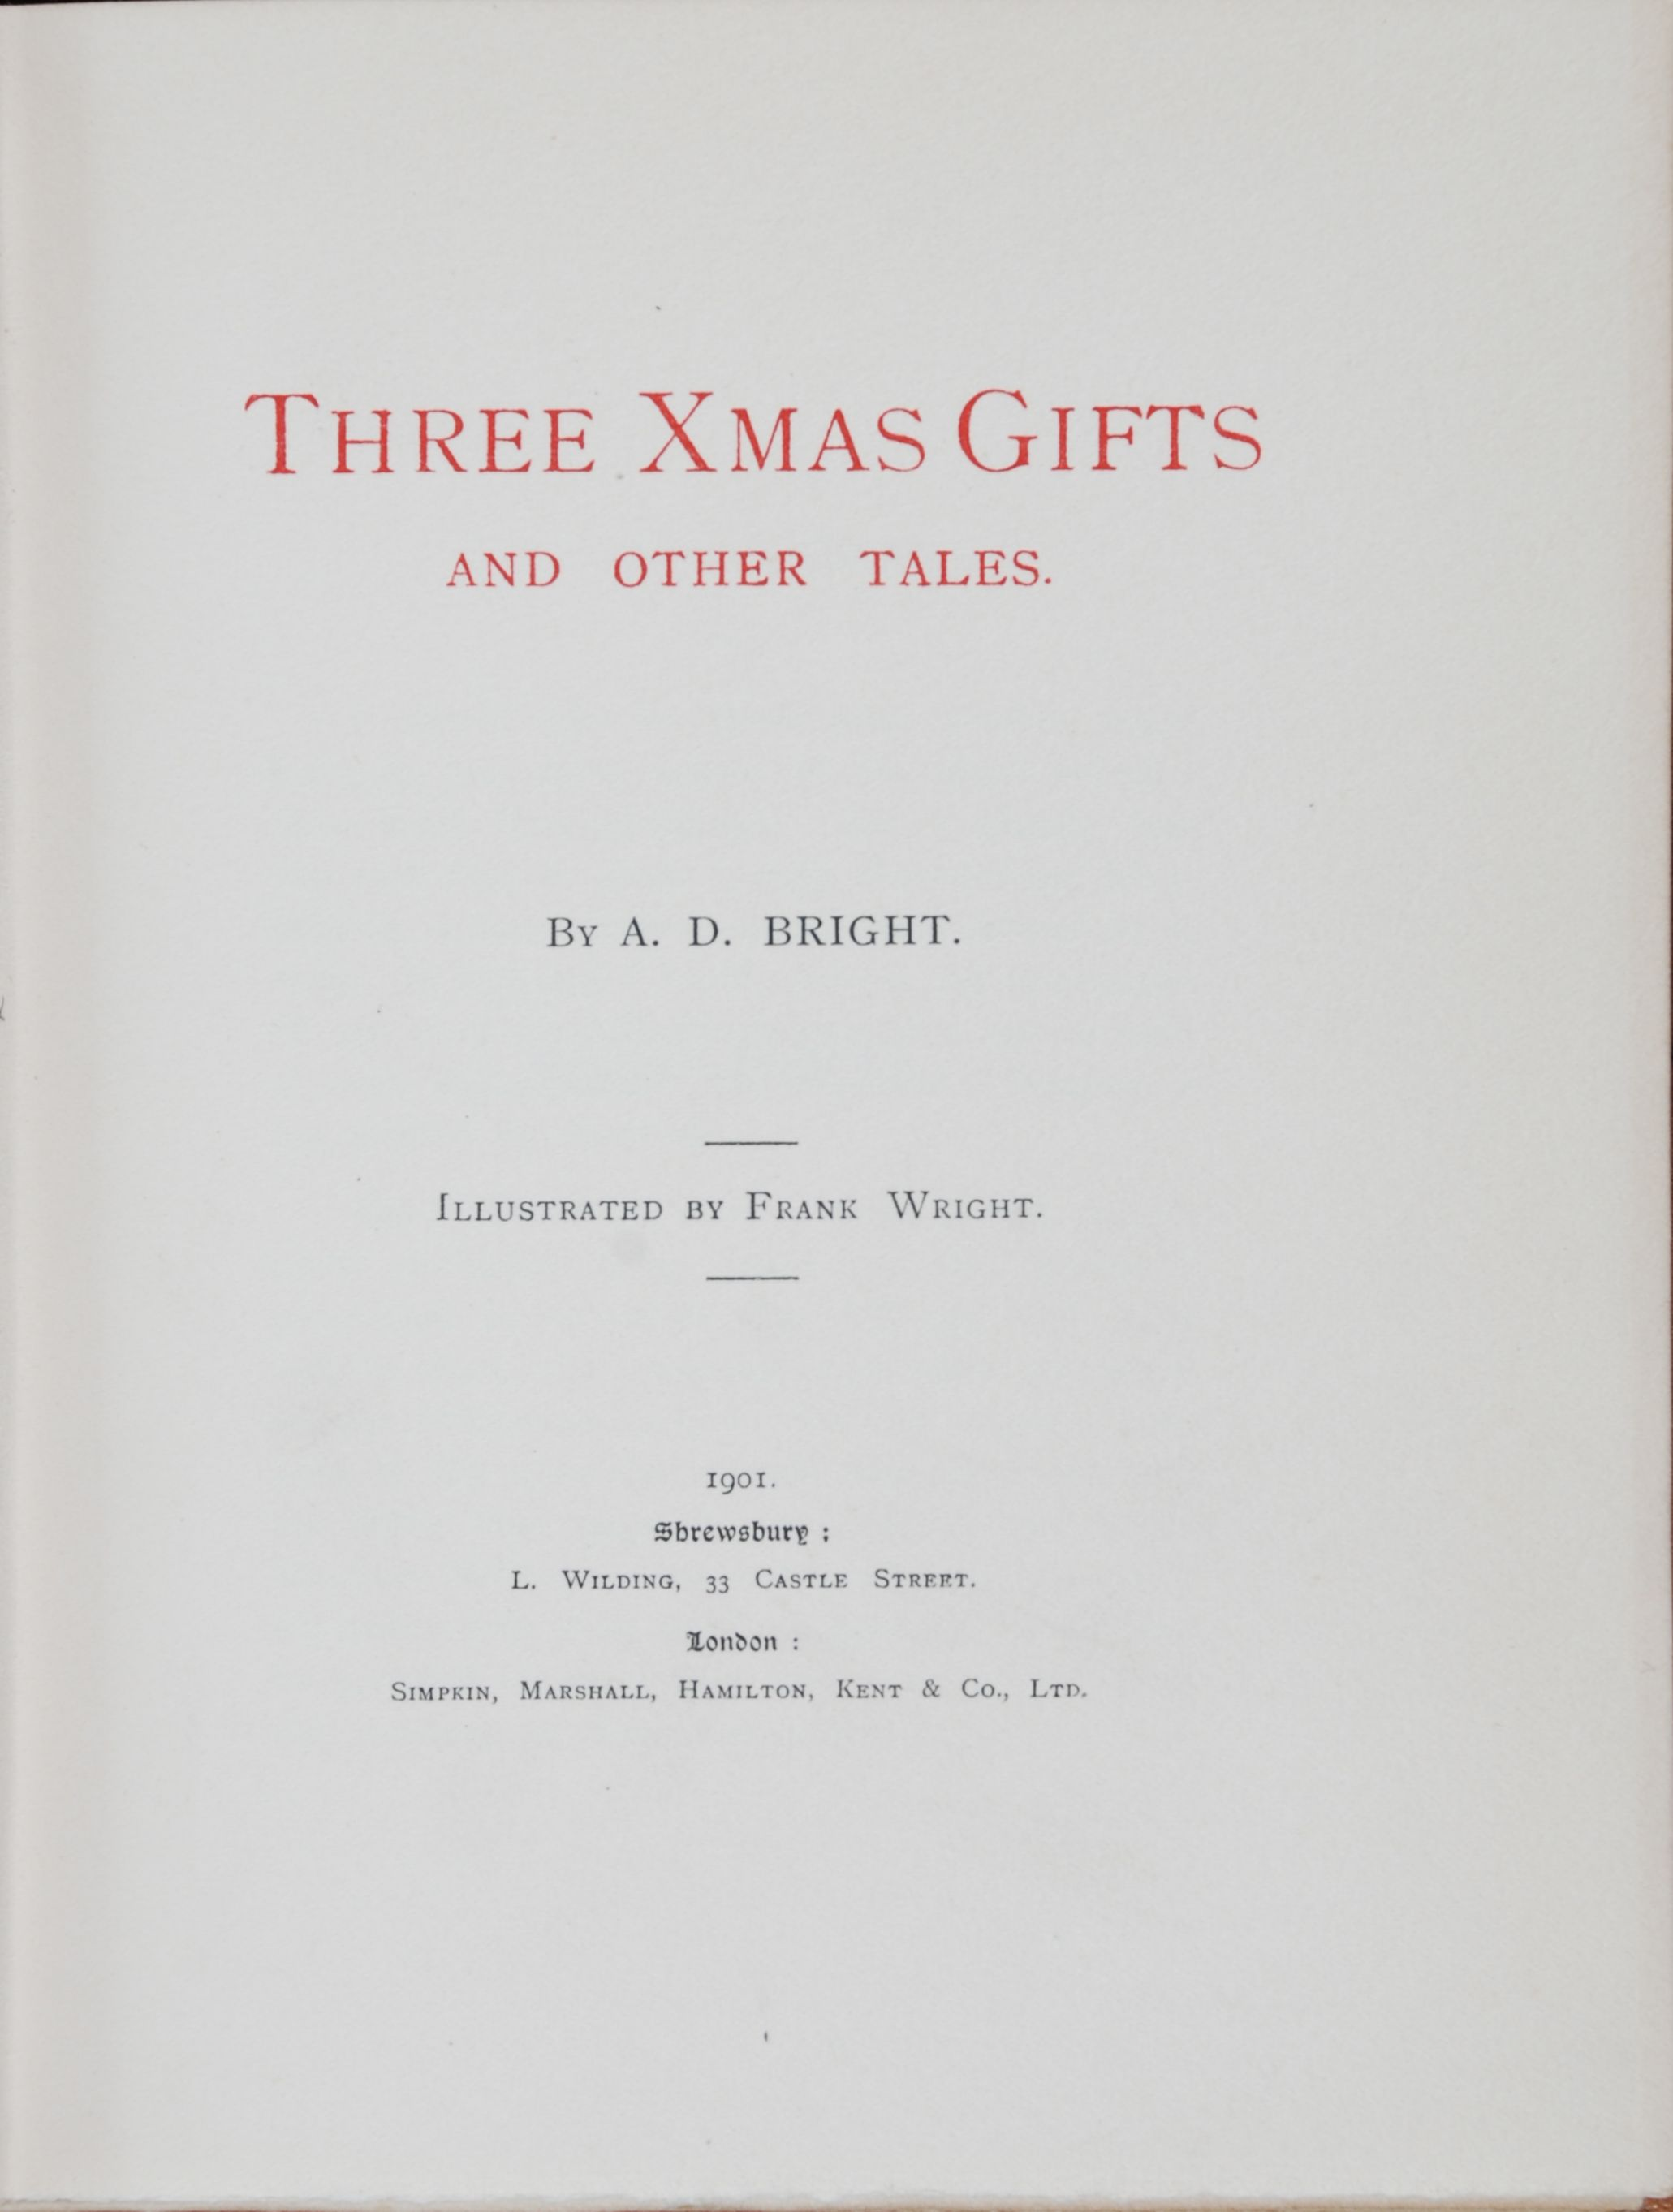 Amy Dora Bright. Three Xmas Gifts and Other Tales, illustrated by Frank Wright. Shrewsbury: L. Wilding, [1901].